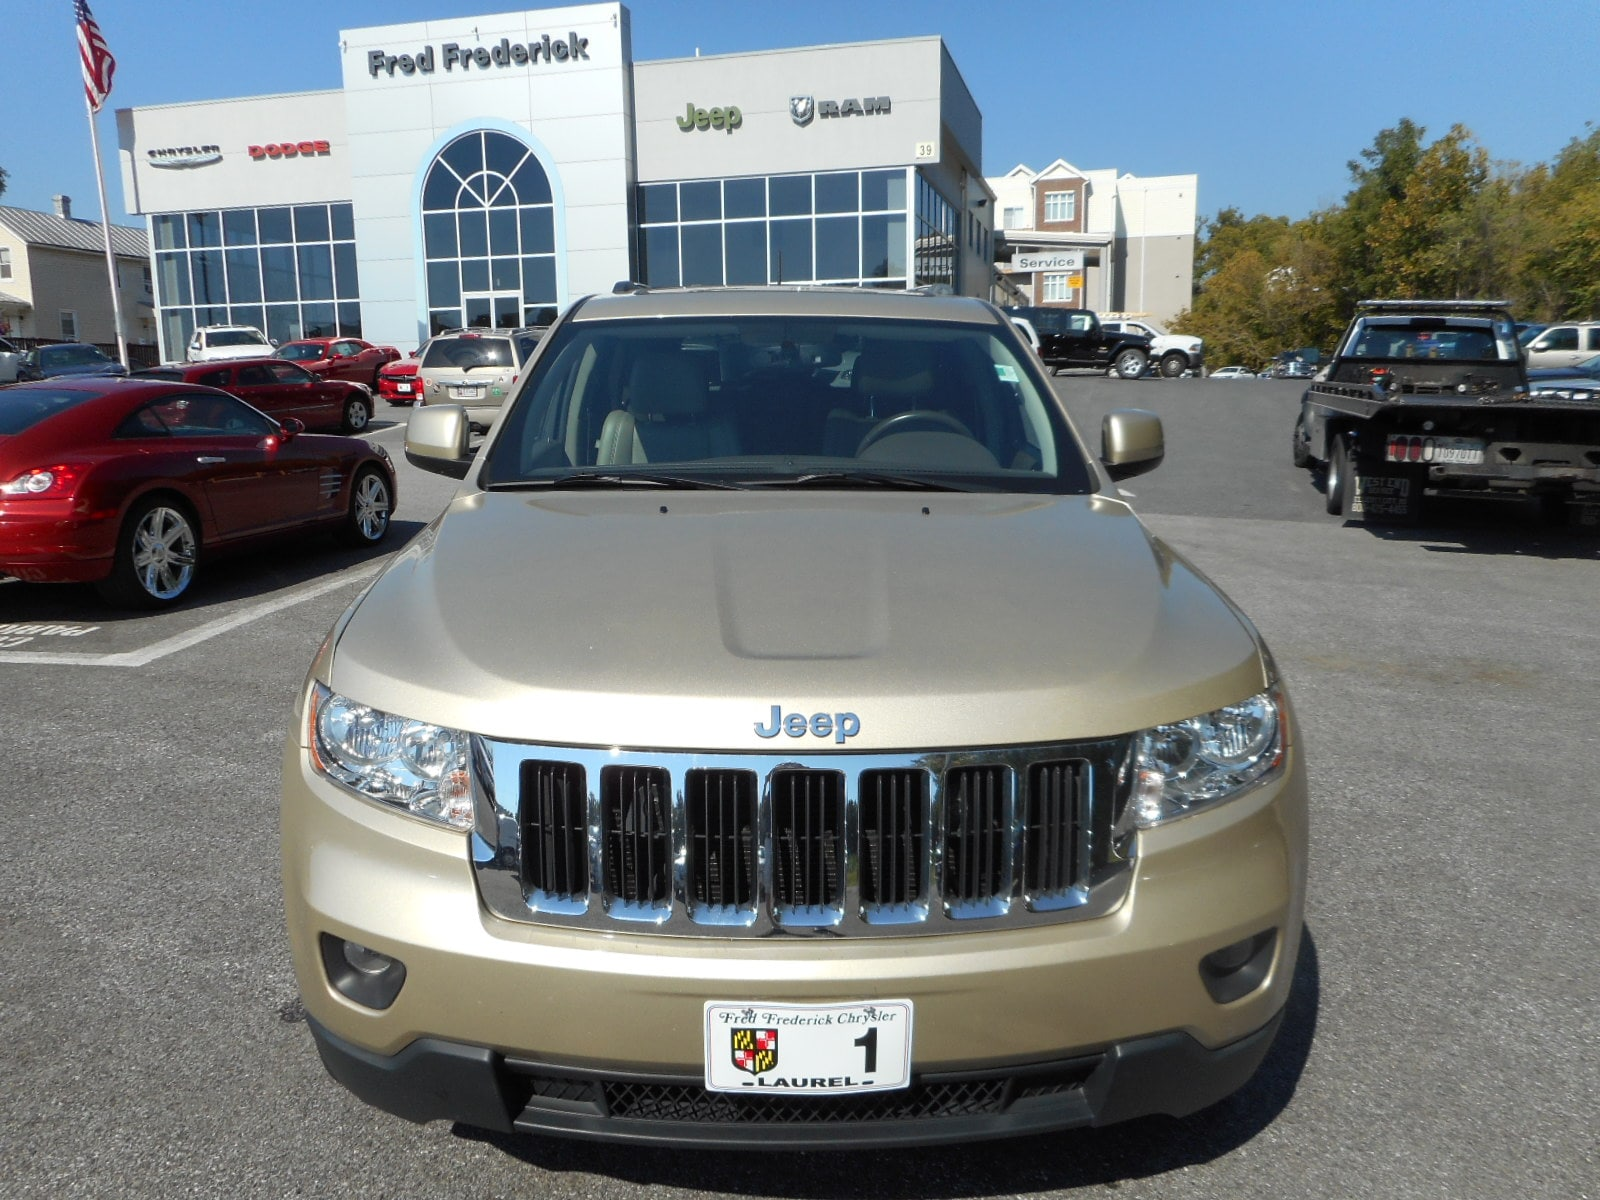 Fred Frederick Chrysler Jeep Dodge Ram | Vehicles for sale in Laurel ...